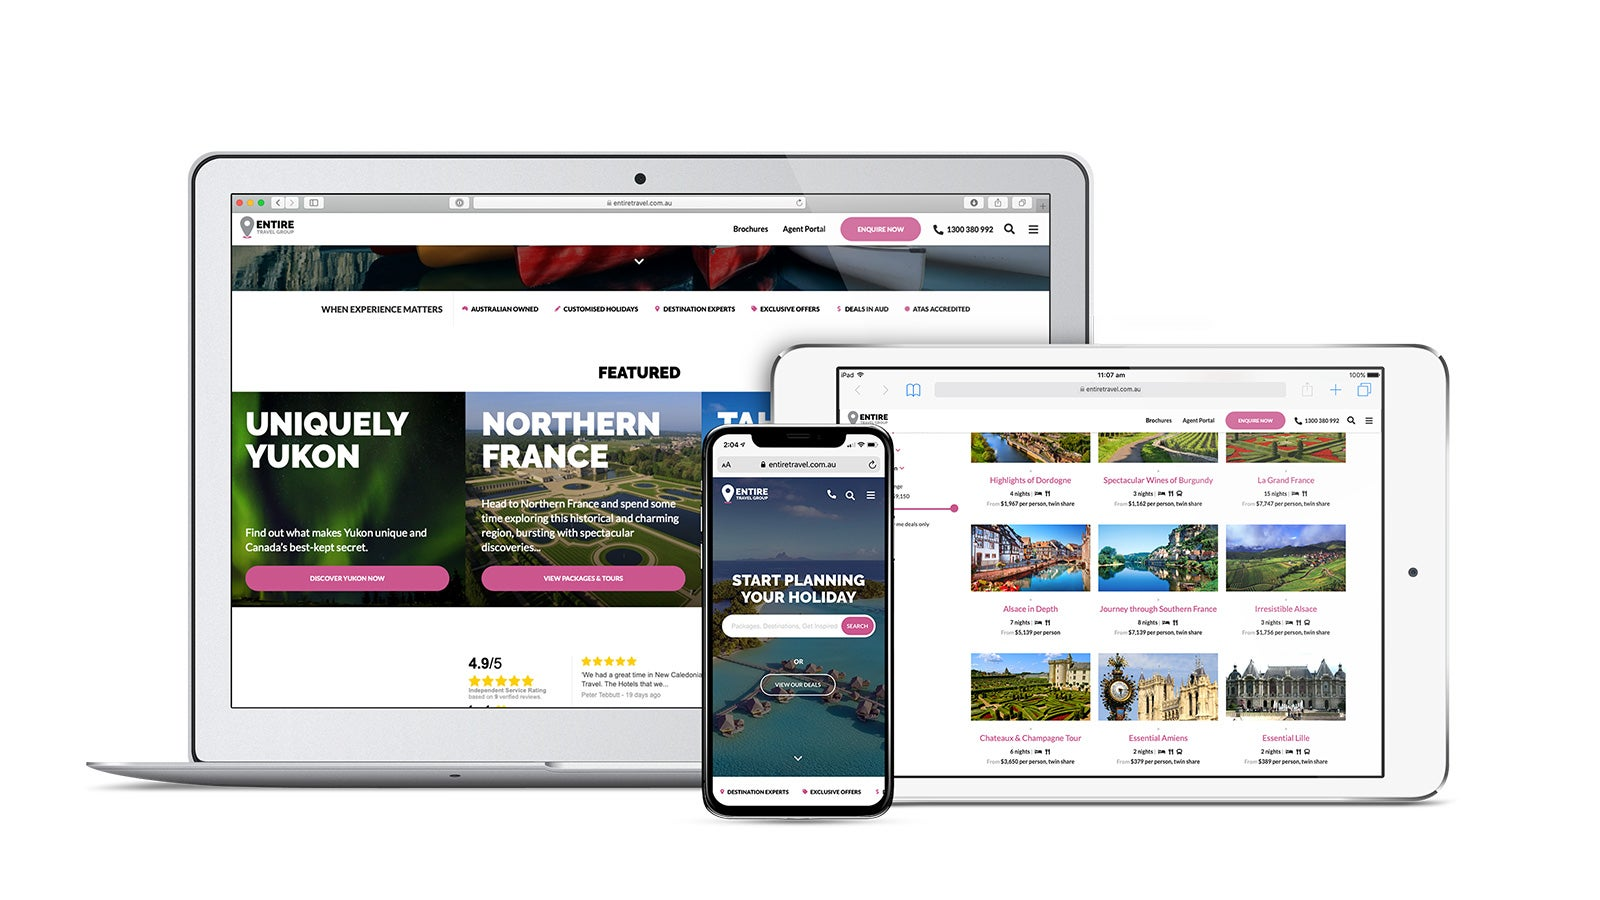 Entire Travel Group gallery image showing the website on a variety of devices.